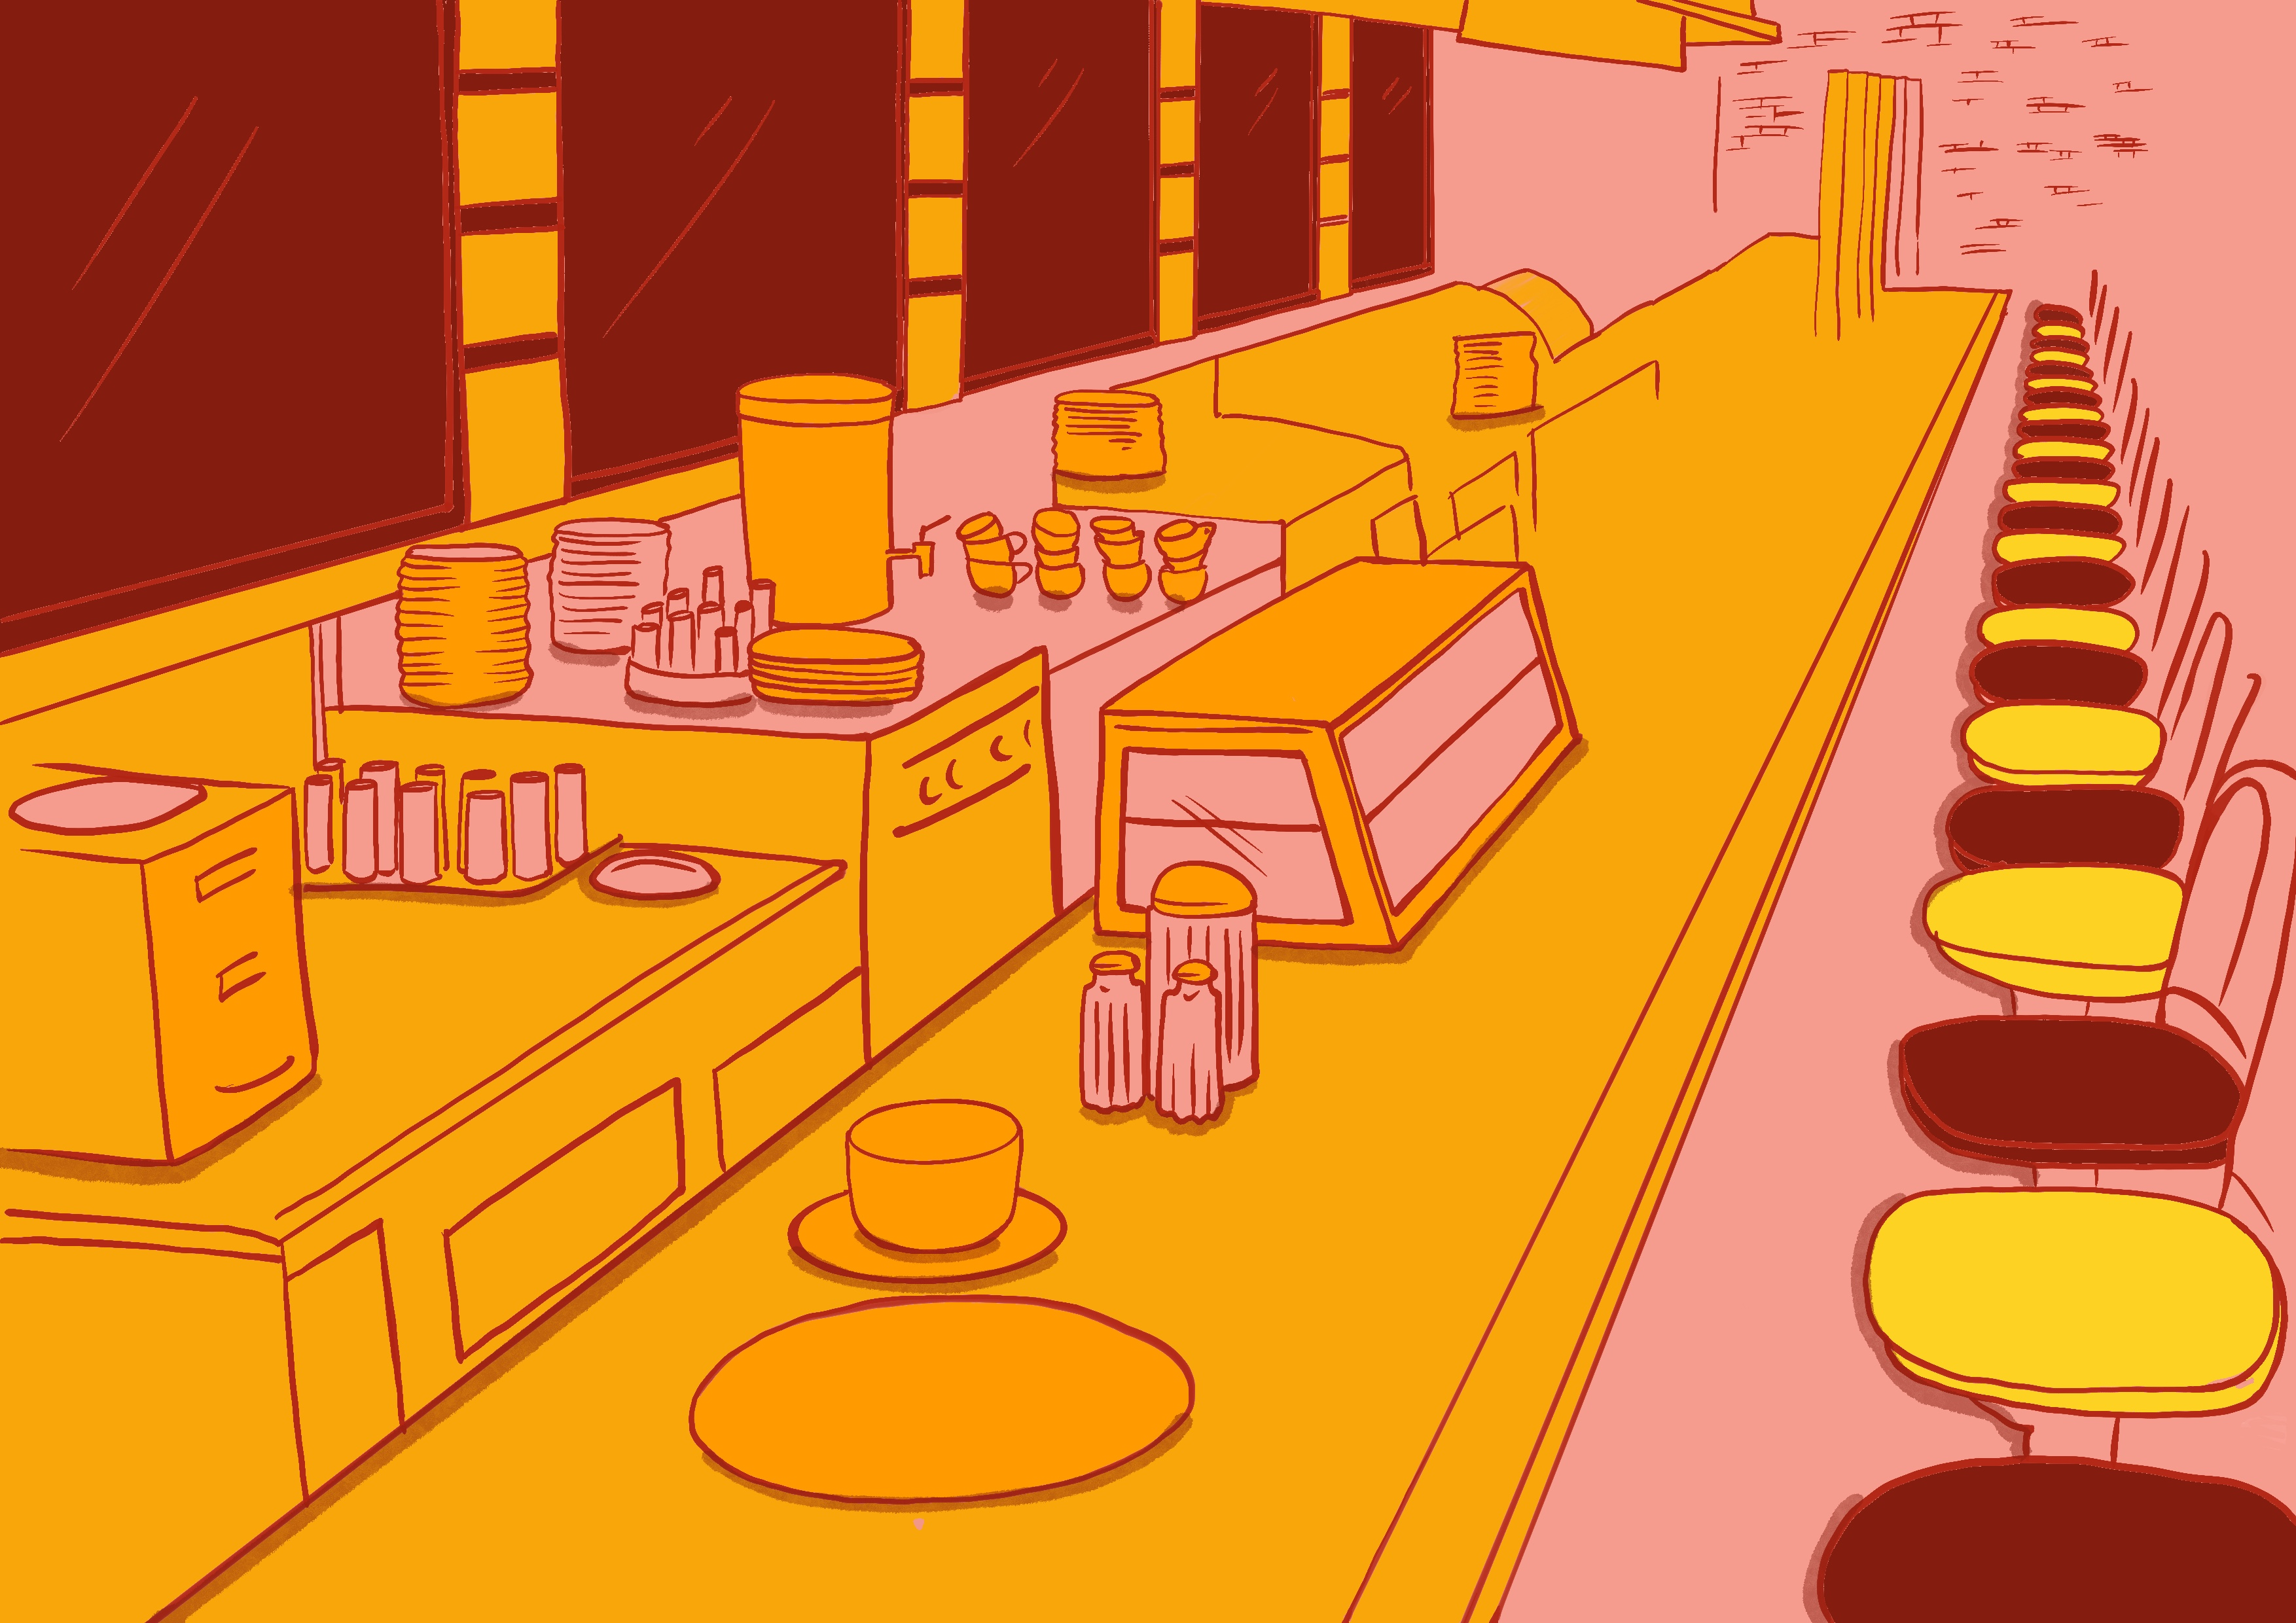 Protest_Woolworth_FoodCounter_by Virginia Elena Patrone